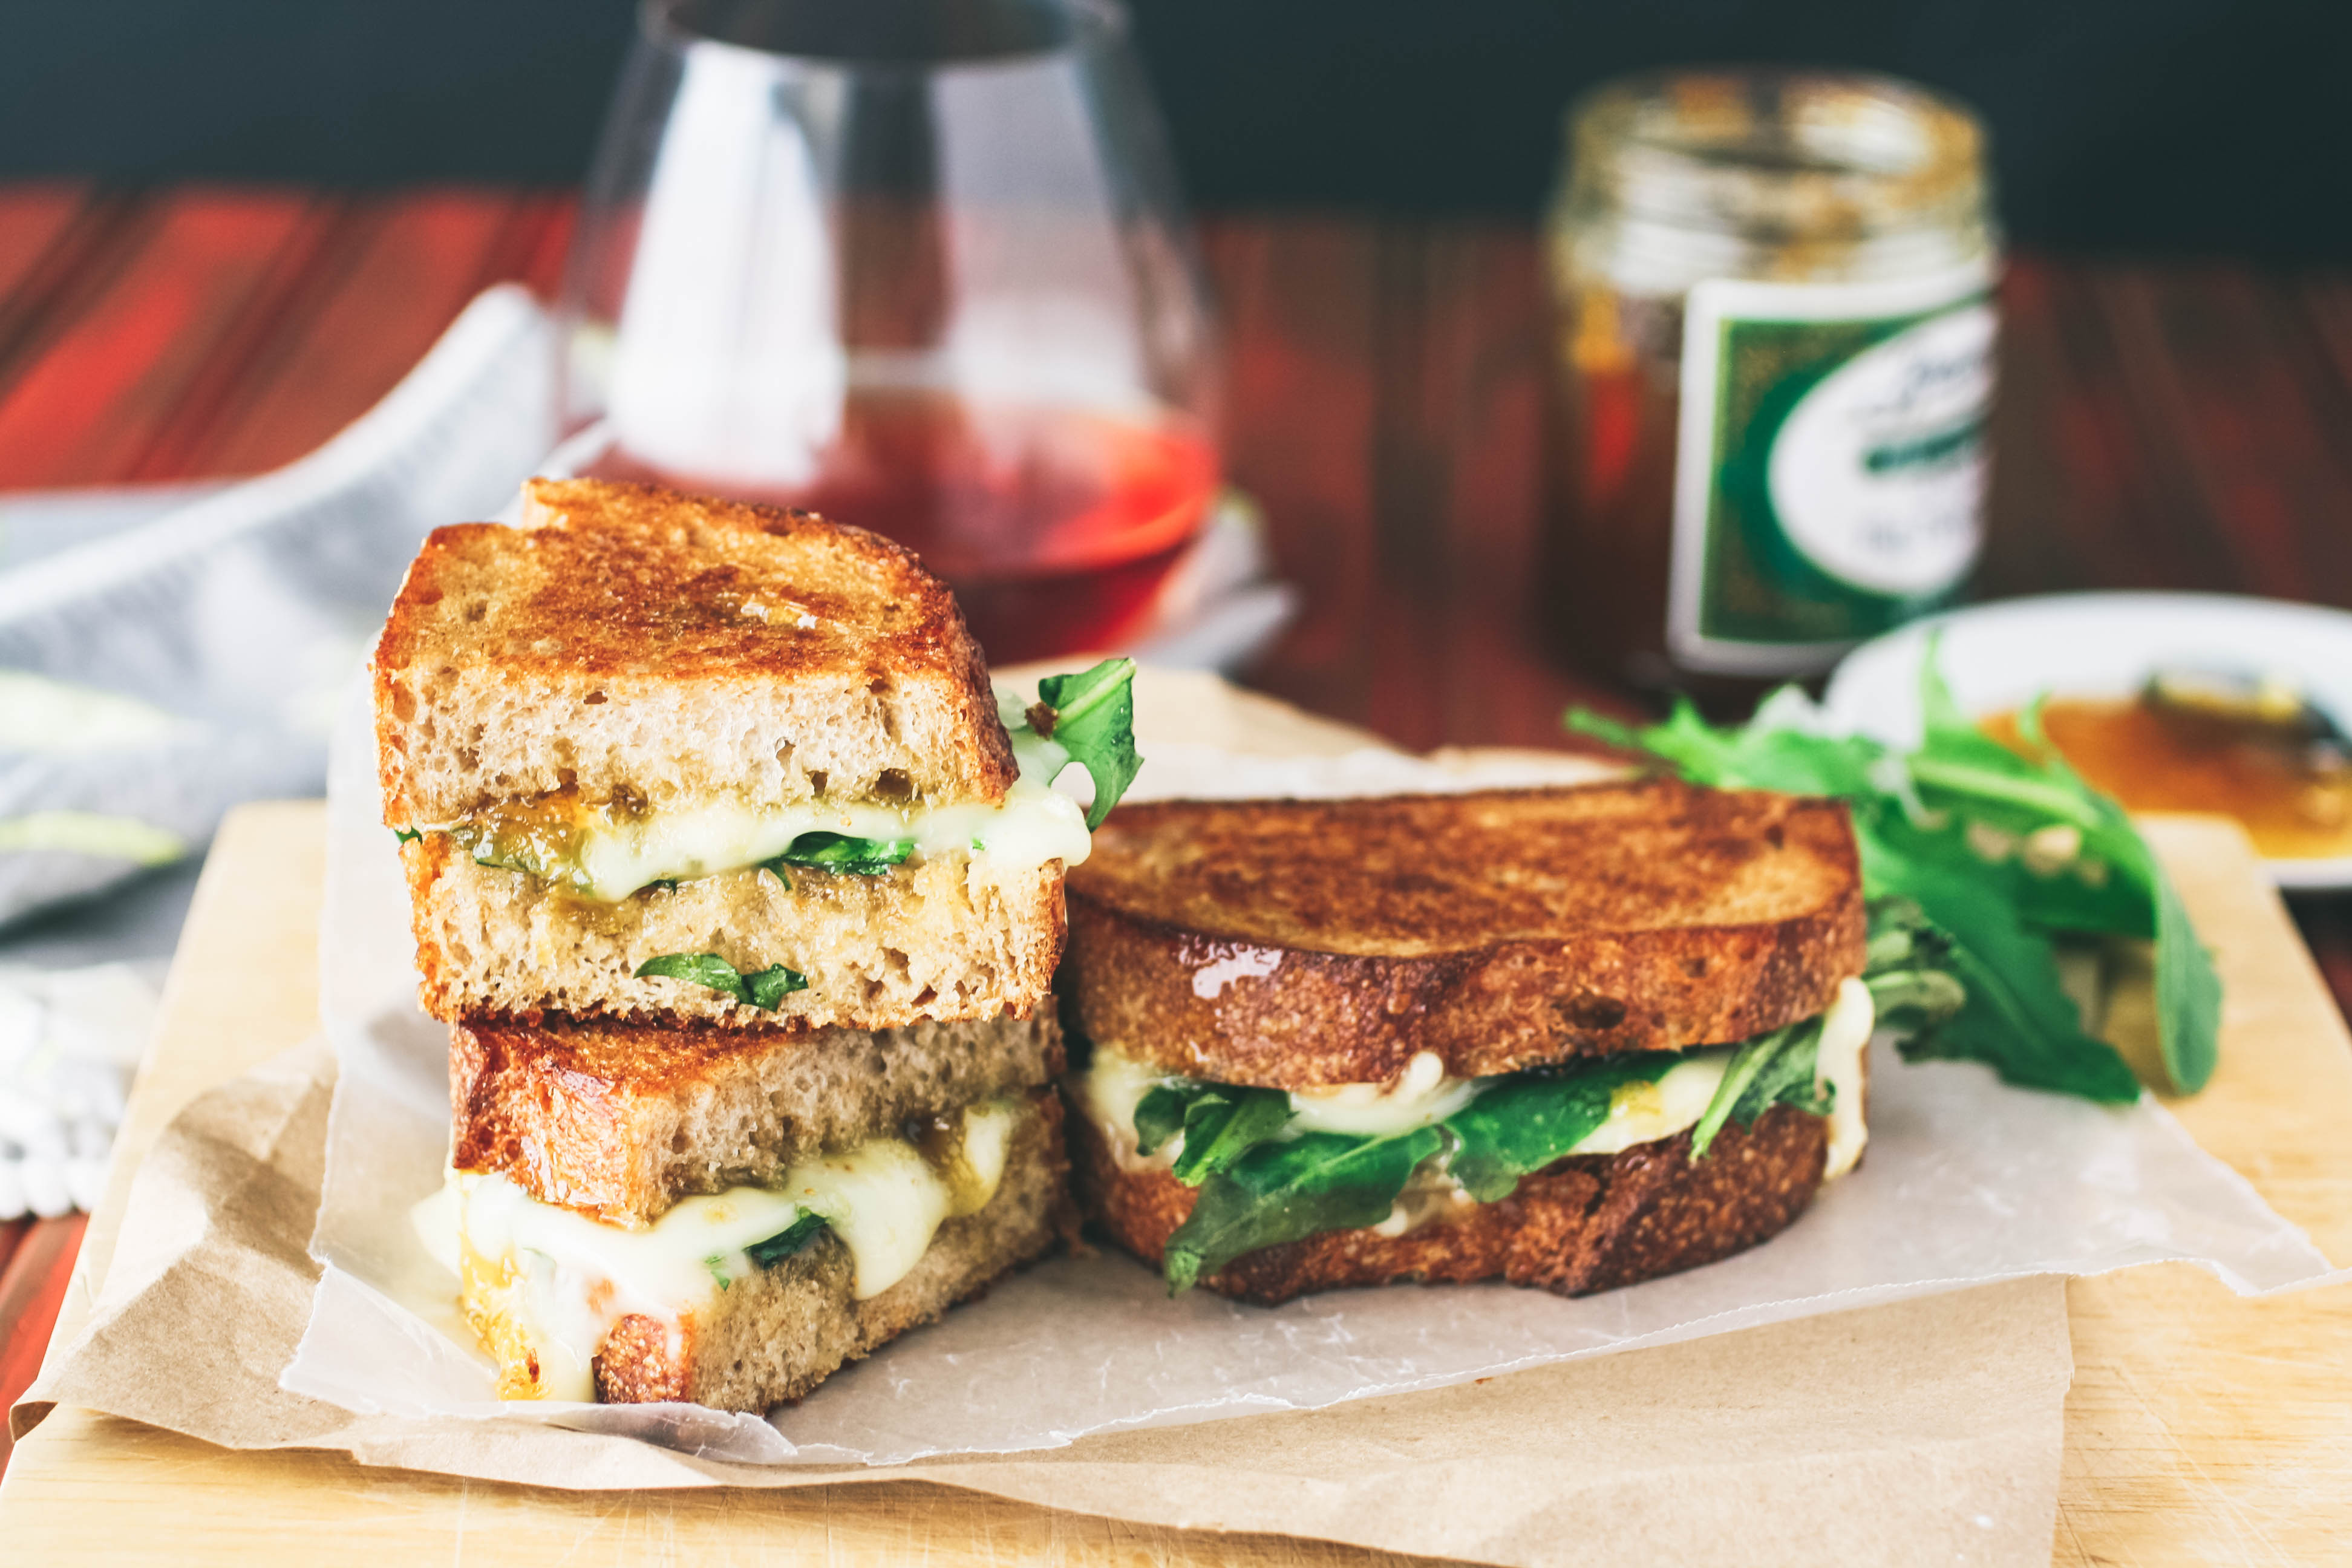 Grilled Brie, Fig Jam, and Dandelion Greens Sandwiches are a treat for when you need a uniquely different and delicious dish! Grilled Brie, Fig Jam, and Dandelion Greens Sandwiches make a fun and flavorful meal.